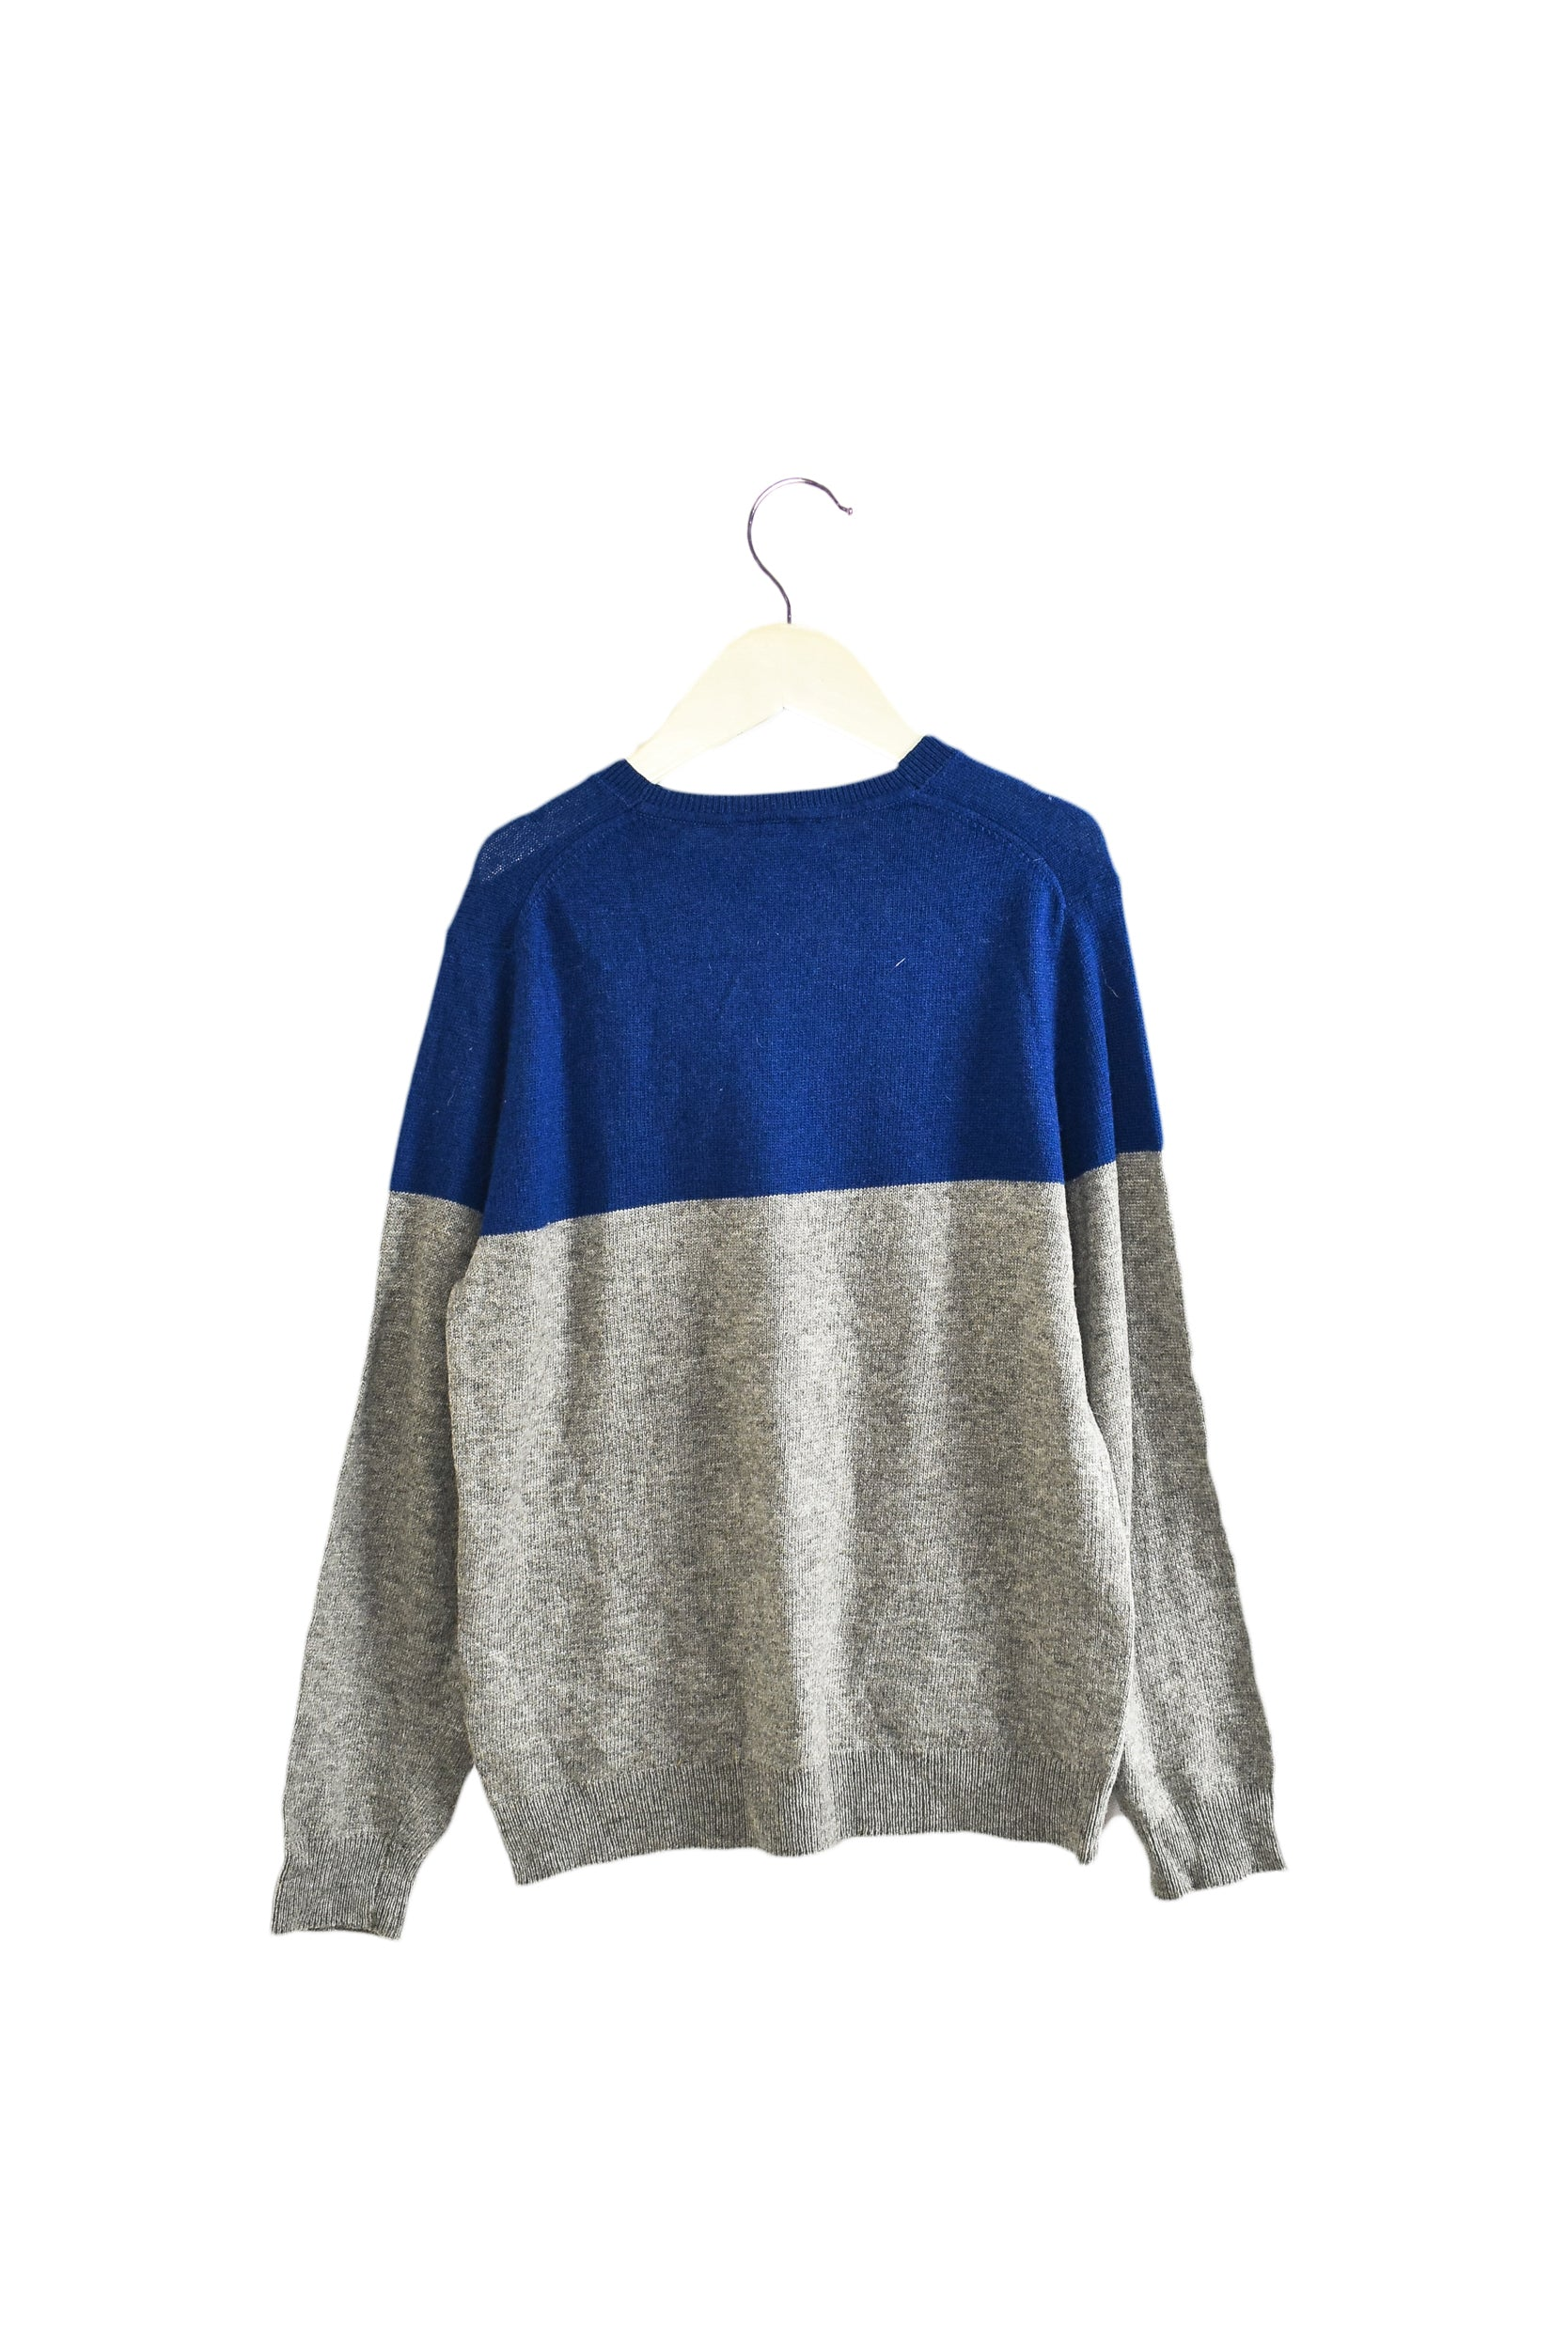 Knit Sweater 8Y at Retykle